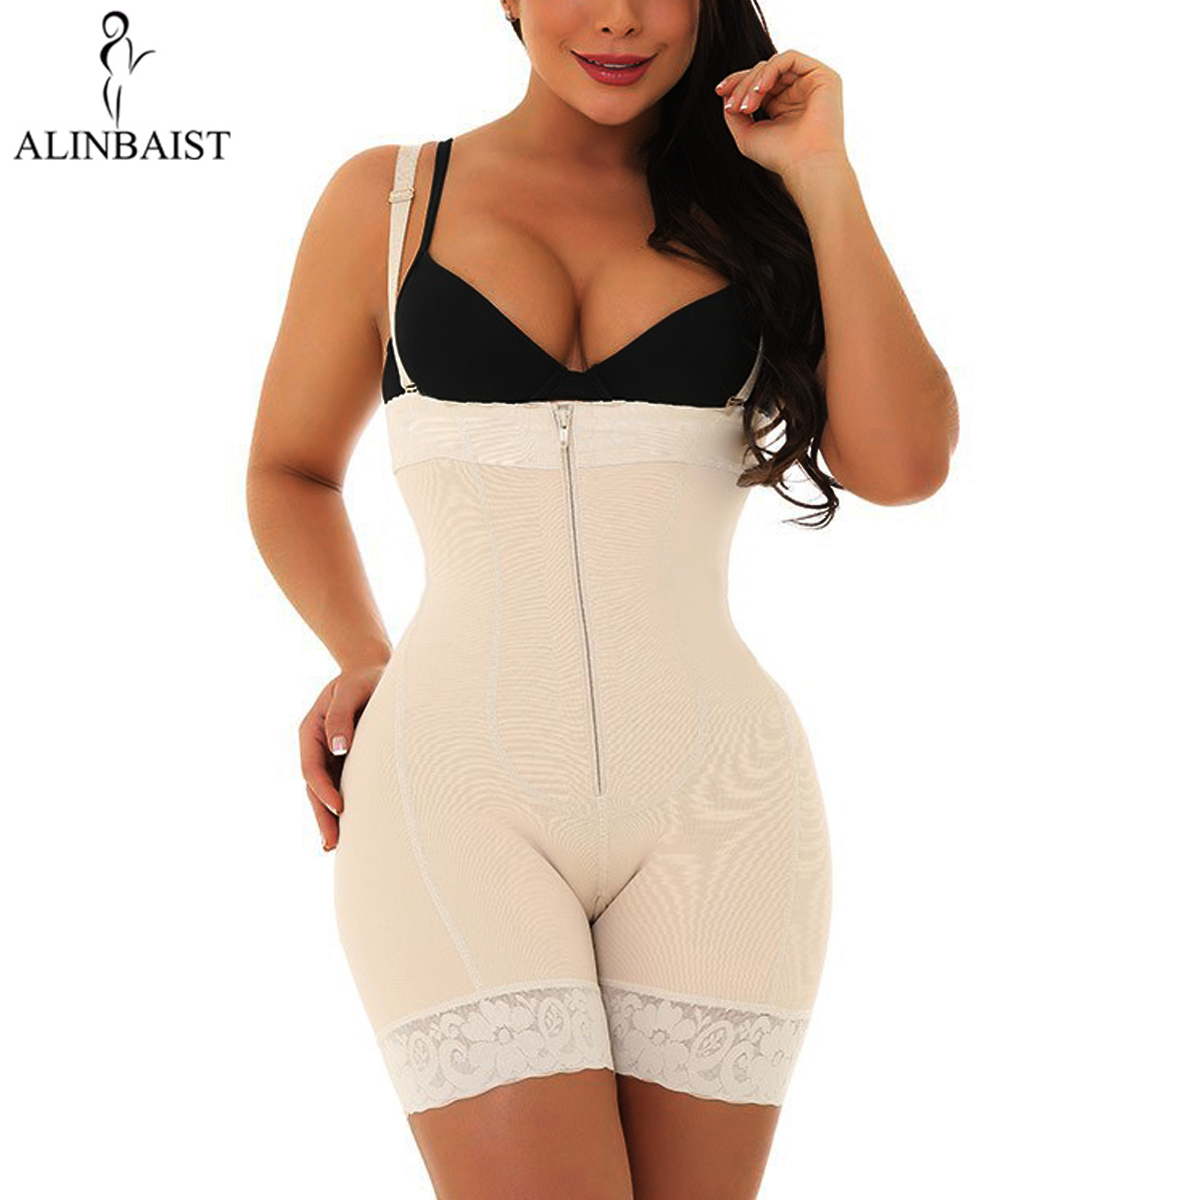 Womens Seamless Shapewear Tummy Control Thigh Slimmer High Waist Butt Lifter Body Shaper Waist Slimming Shaper Postpartum Girdle